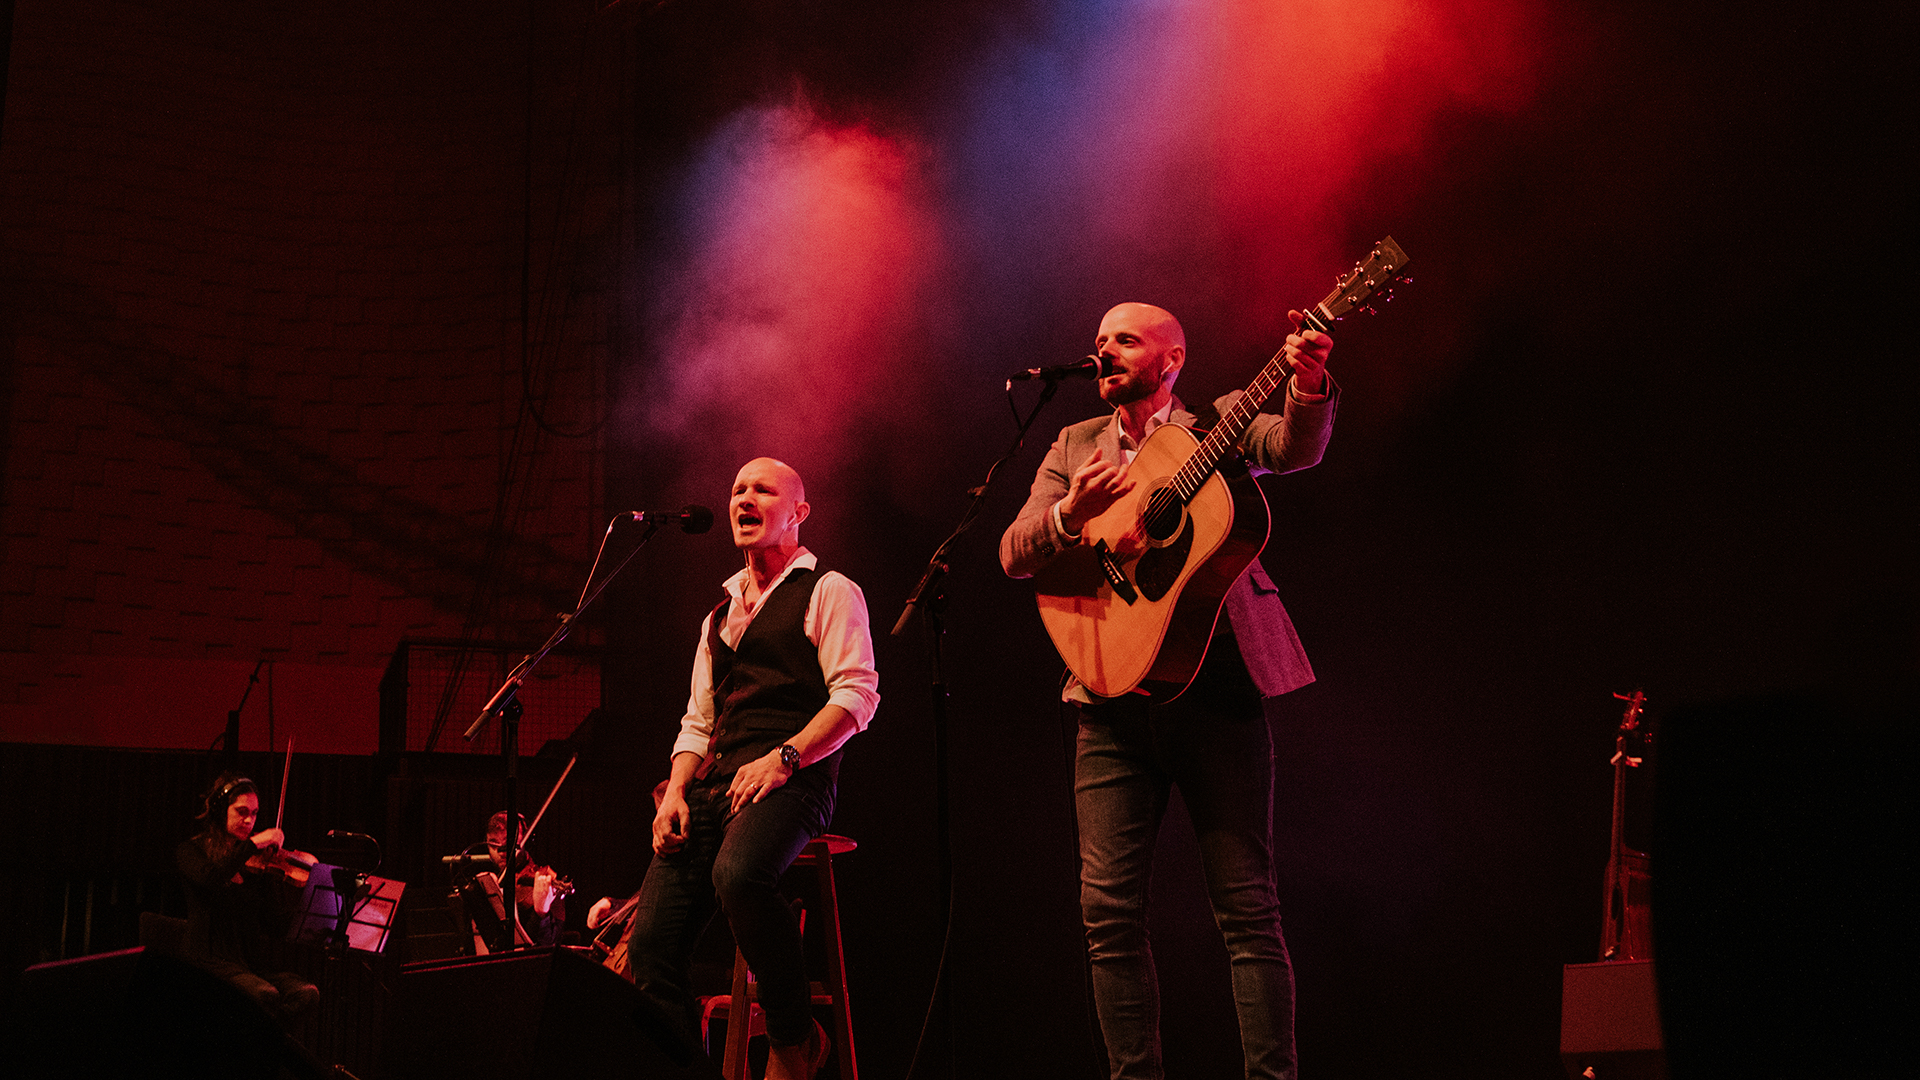 Two men performing Simon and Garfunkel songs on stage, one holding a guitar, with a string trio in the background